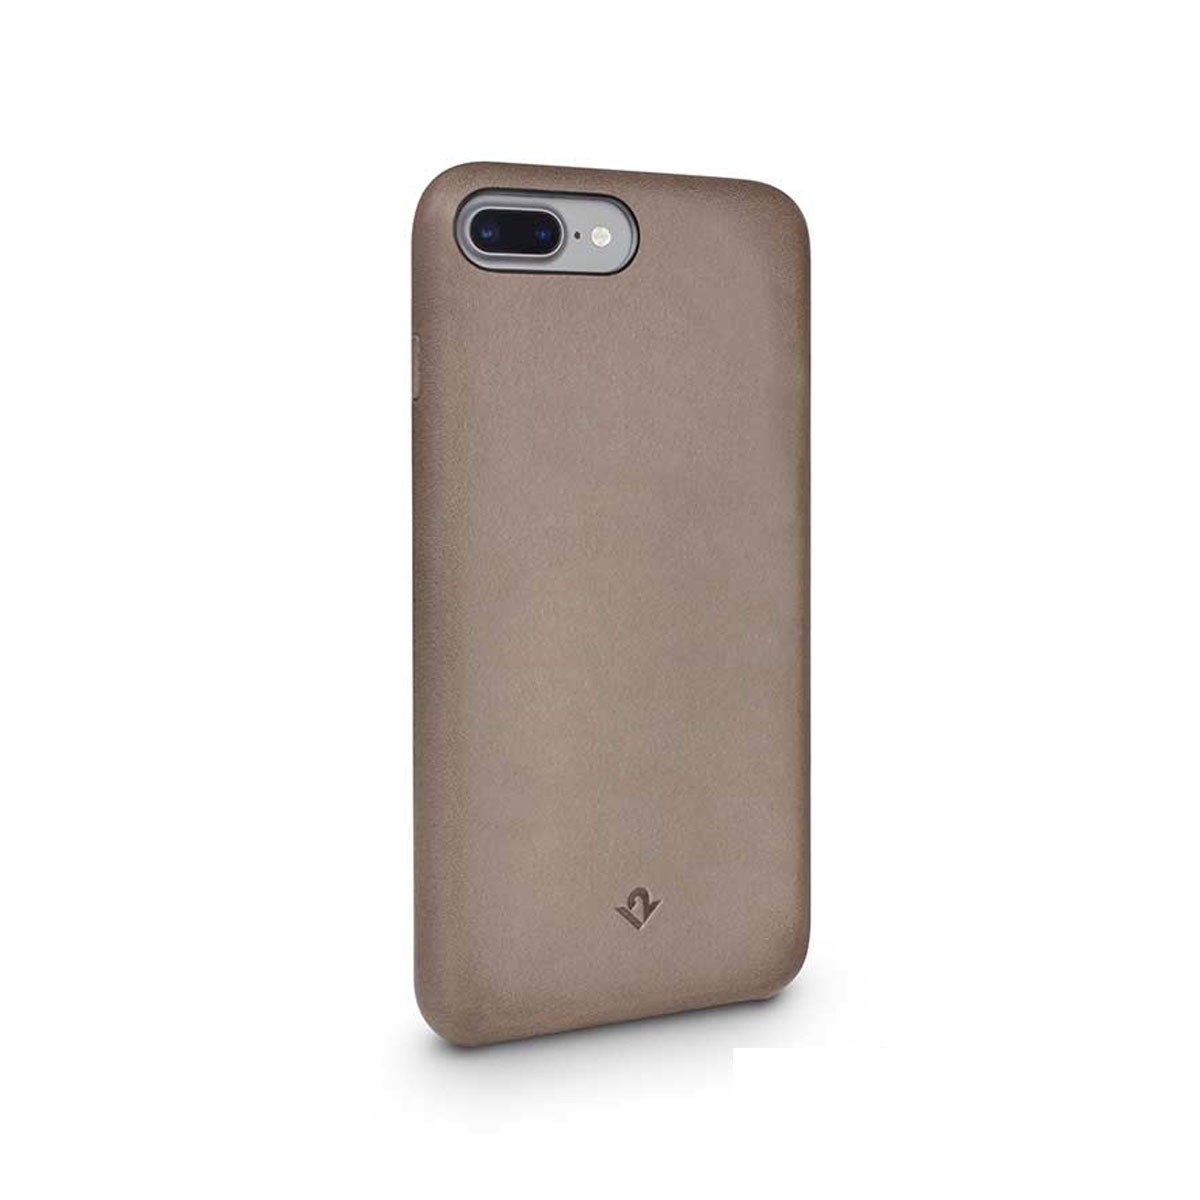 TwelveSouth Relaxed Leather Clip for iPhone 7 Plus - Warm Taupe